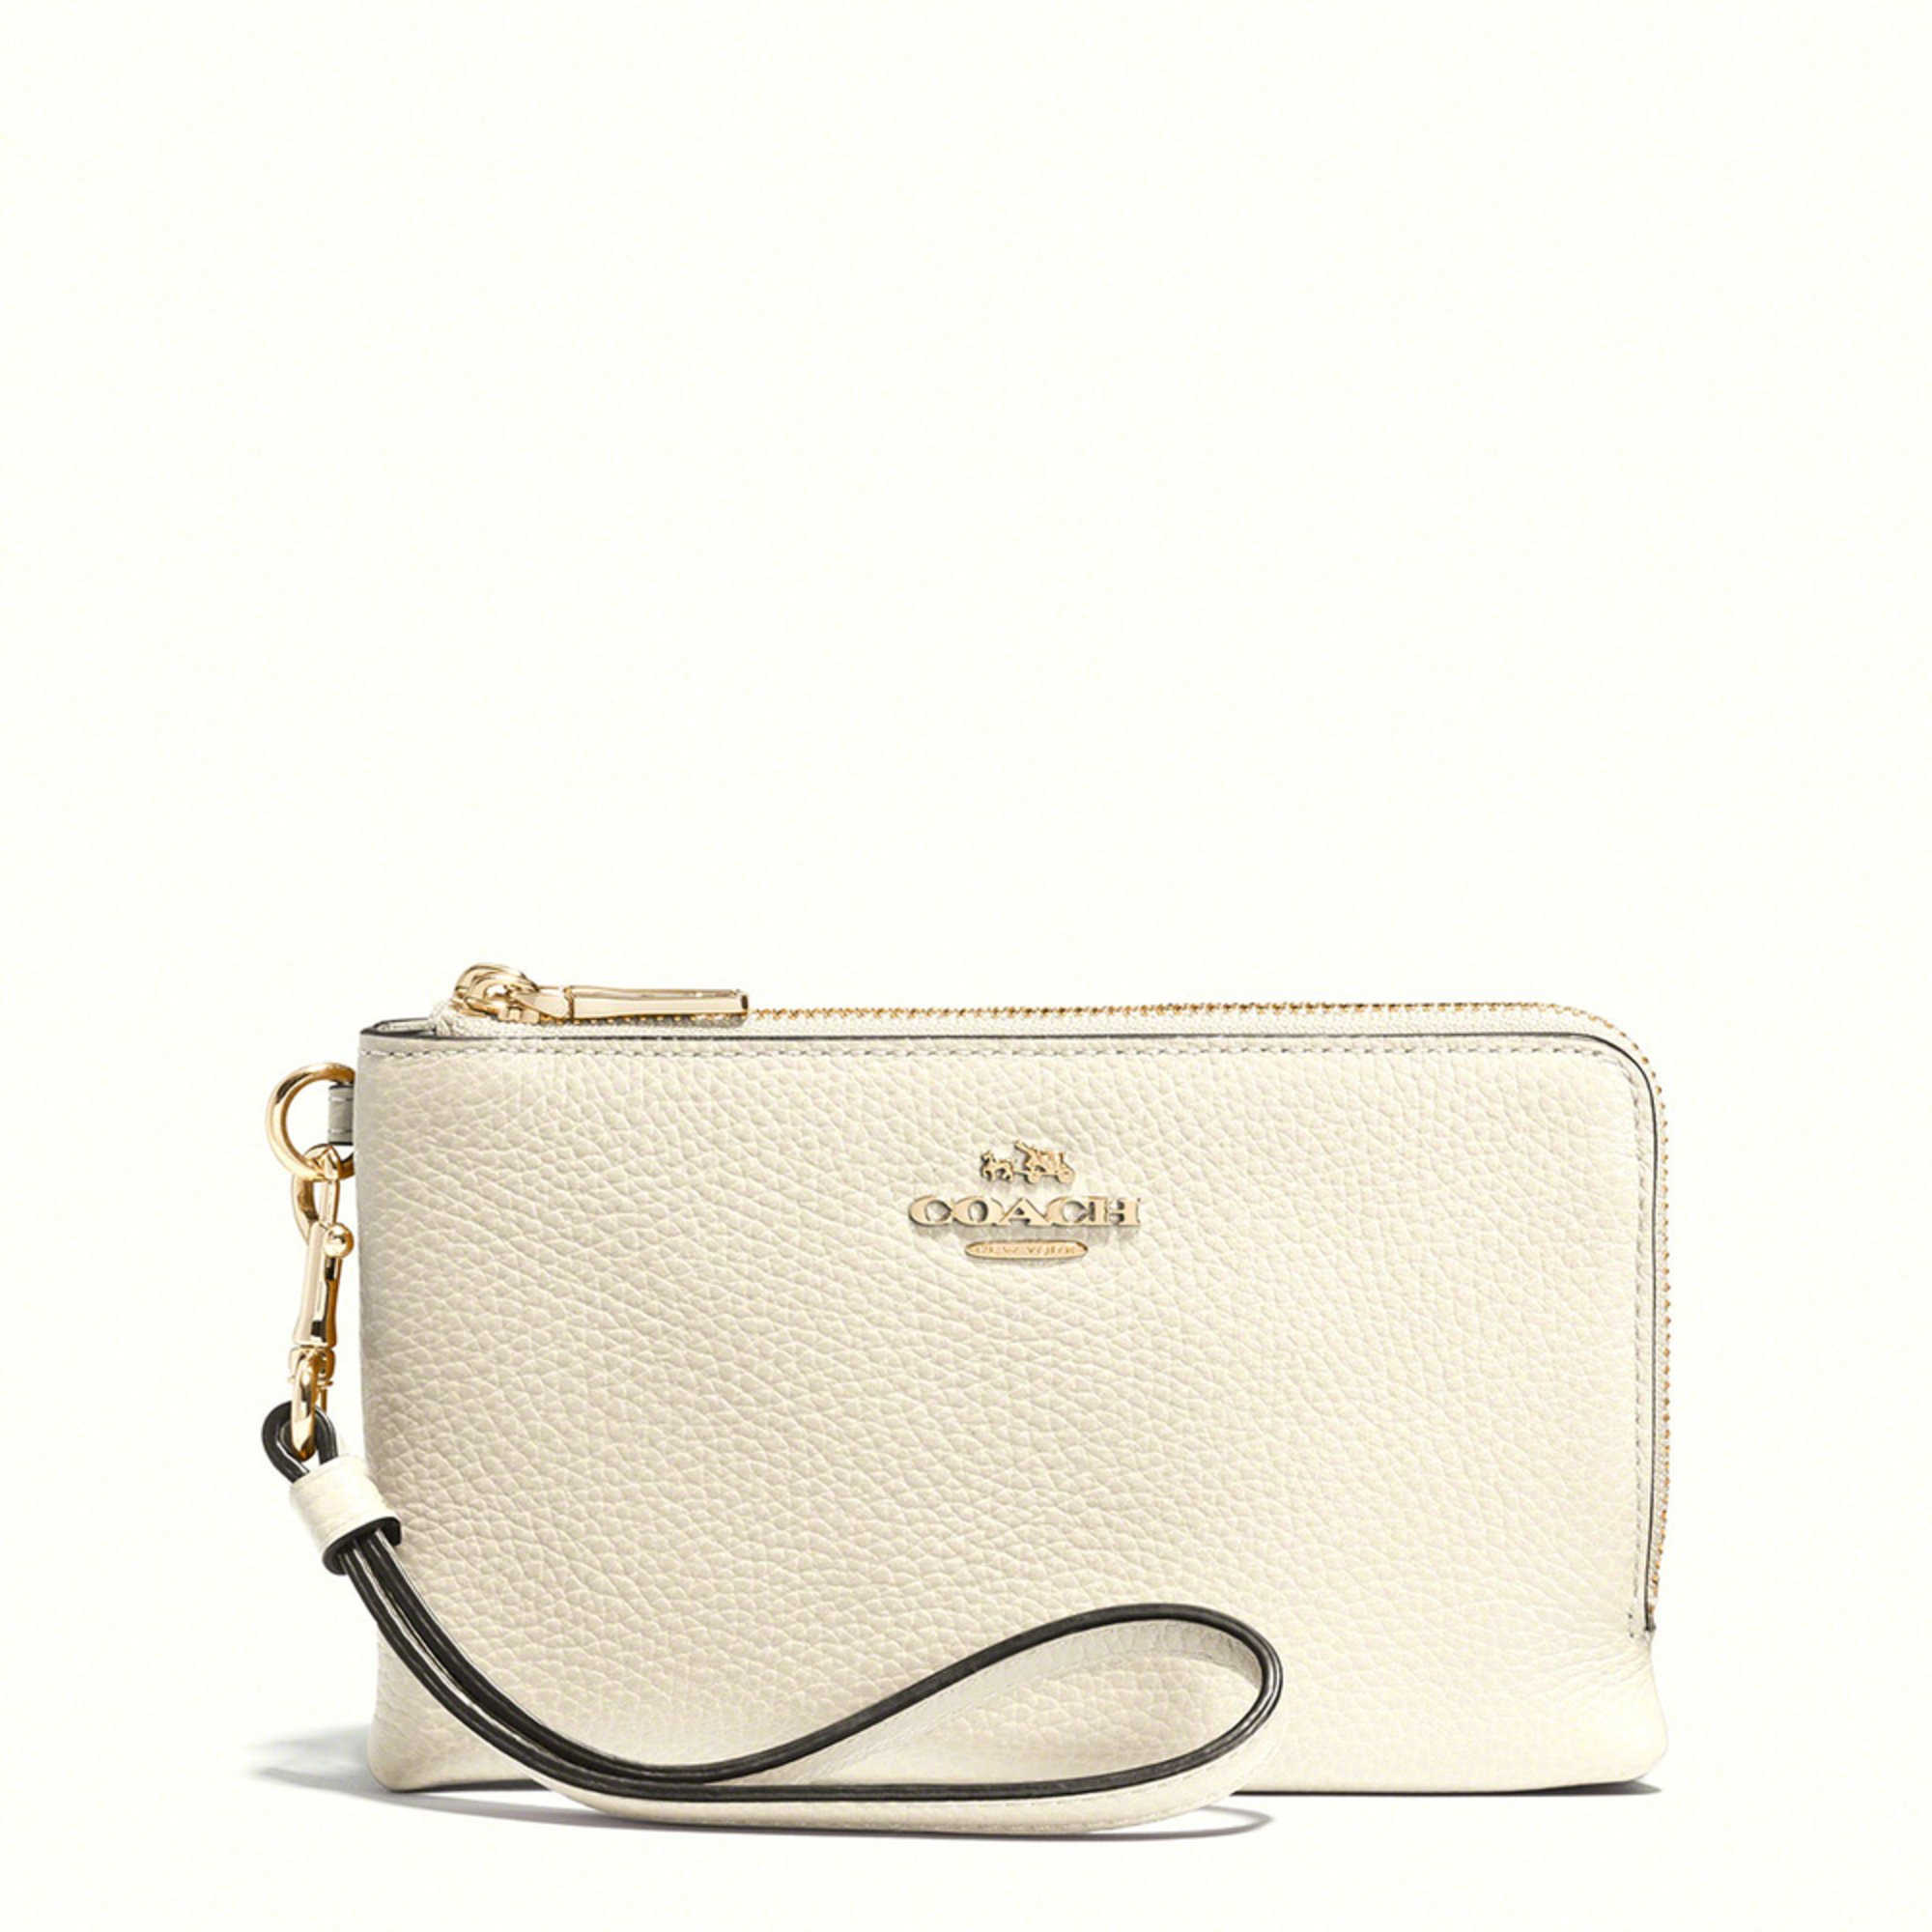 coach wallets for women outlet hohl  coach wallets for women outlet